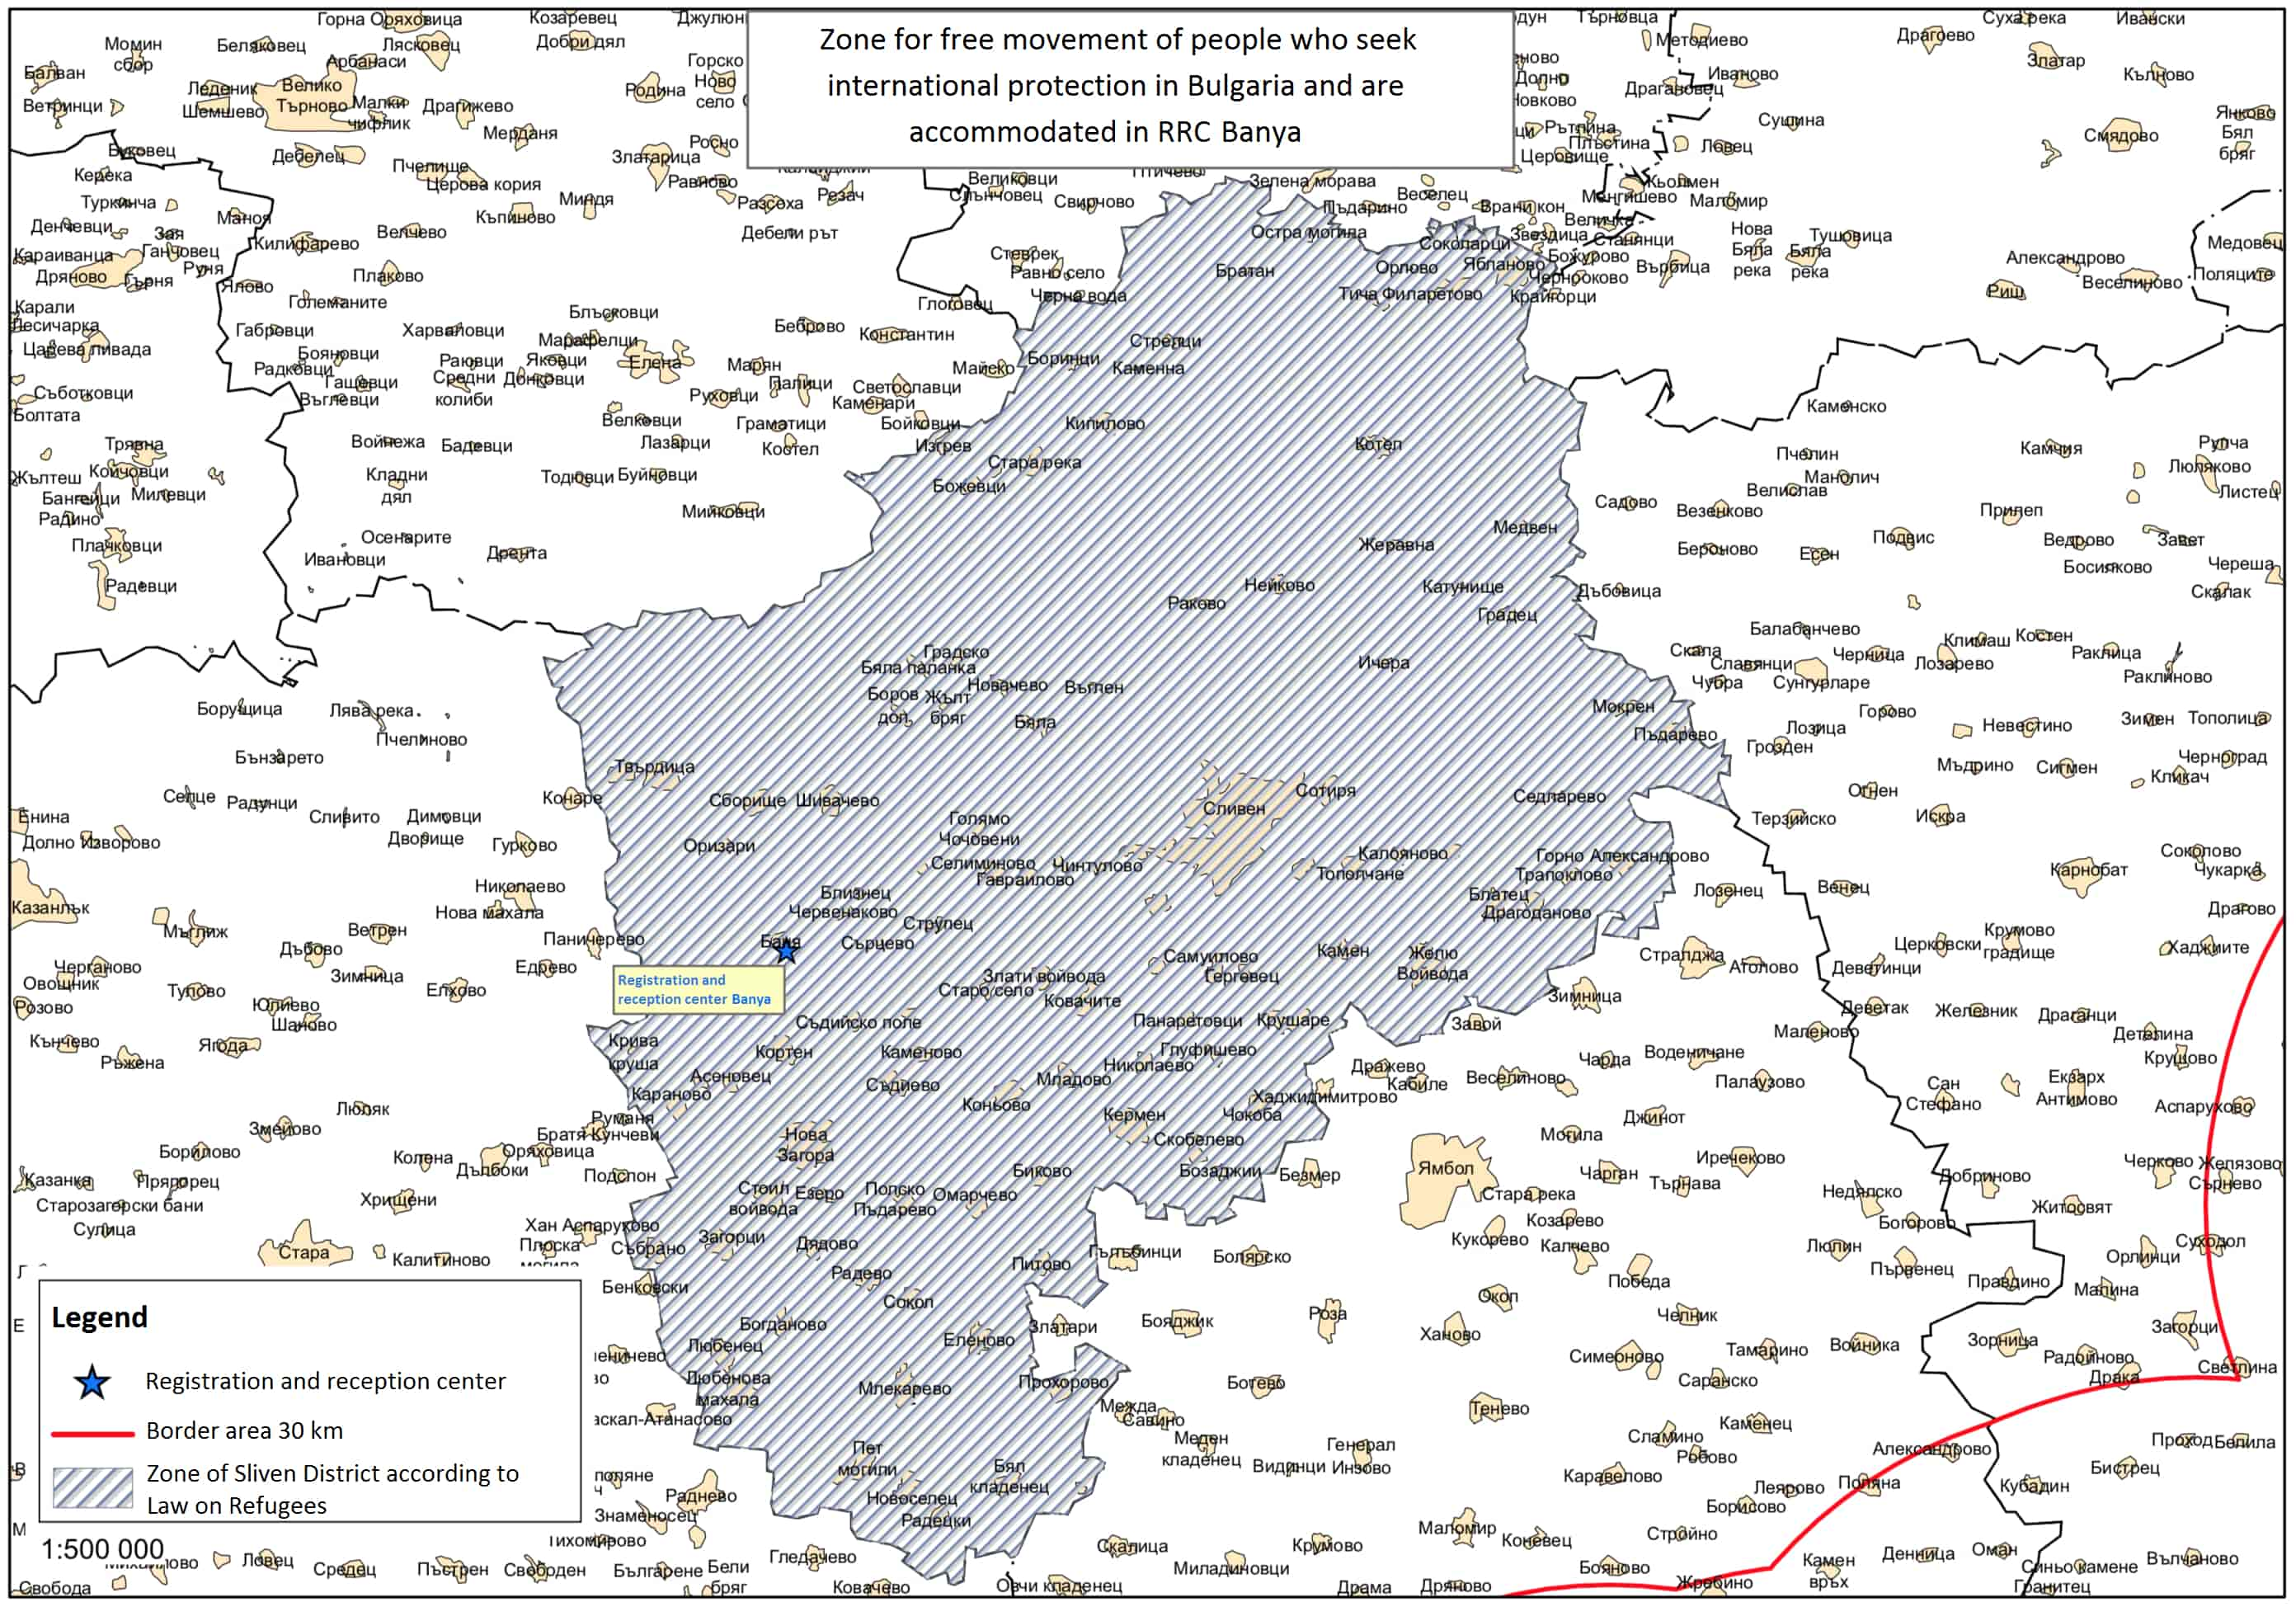 Zones of free and restricted movement for asylum-seekers accommodated in Banya